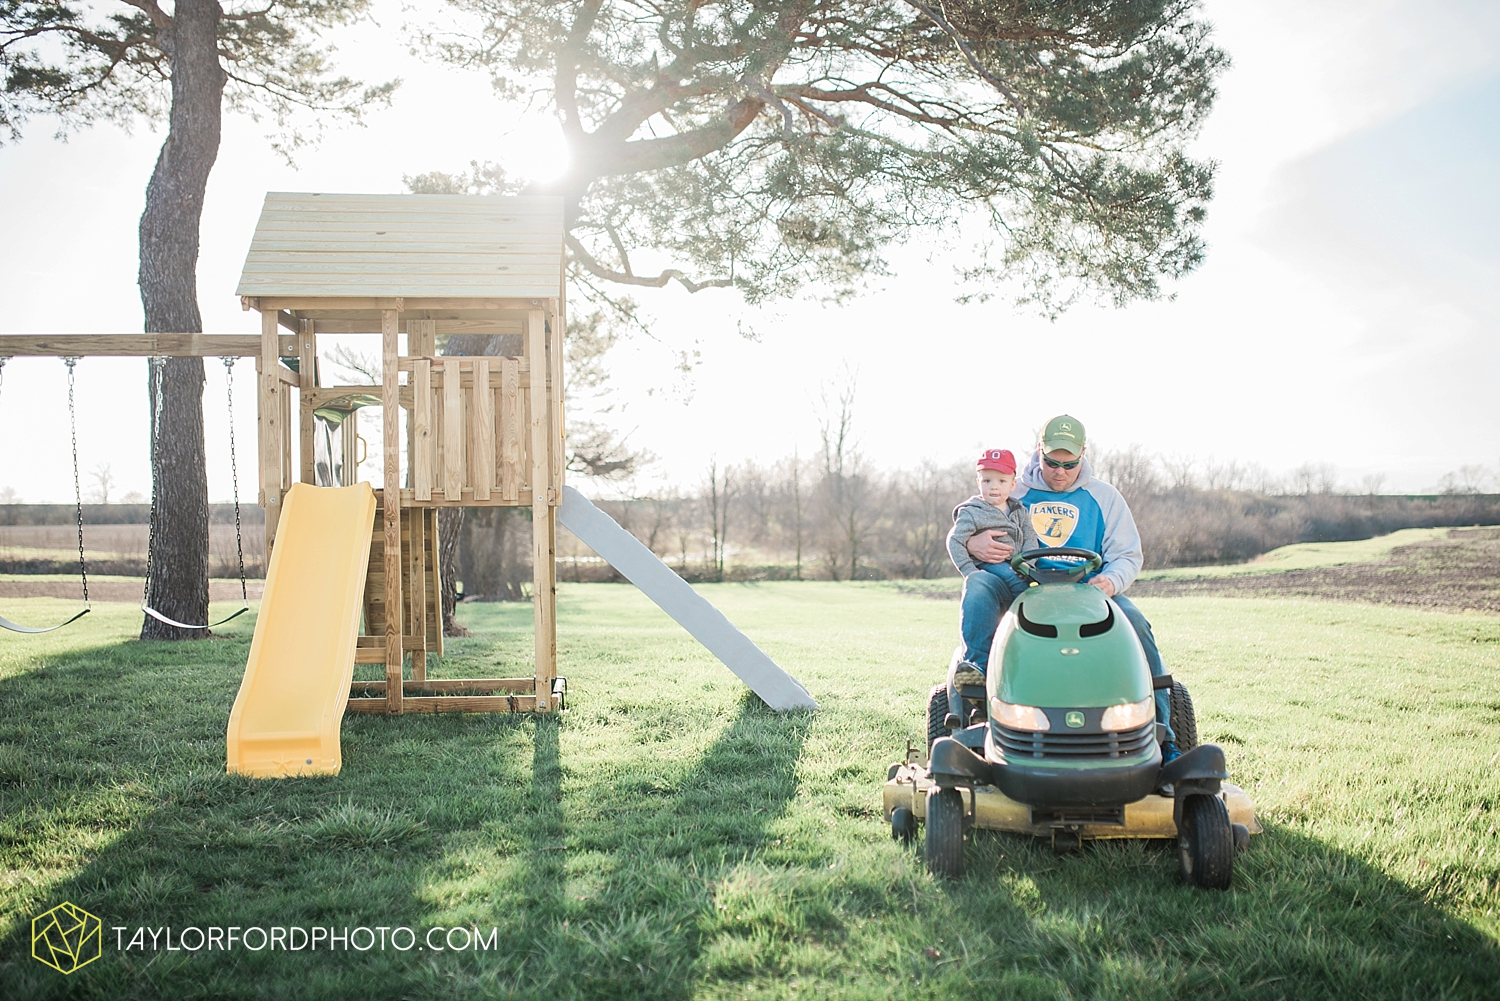 nashville_tennessee_taylor_ford_photography_lifestyle_newborn_family_photographer_4708.jpg